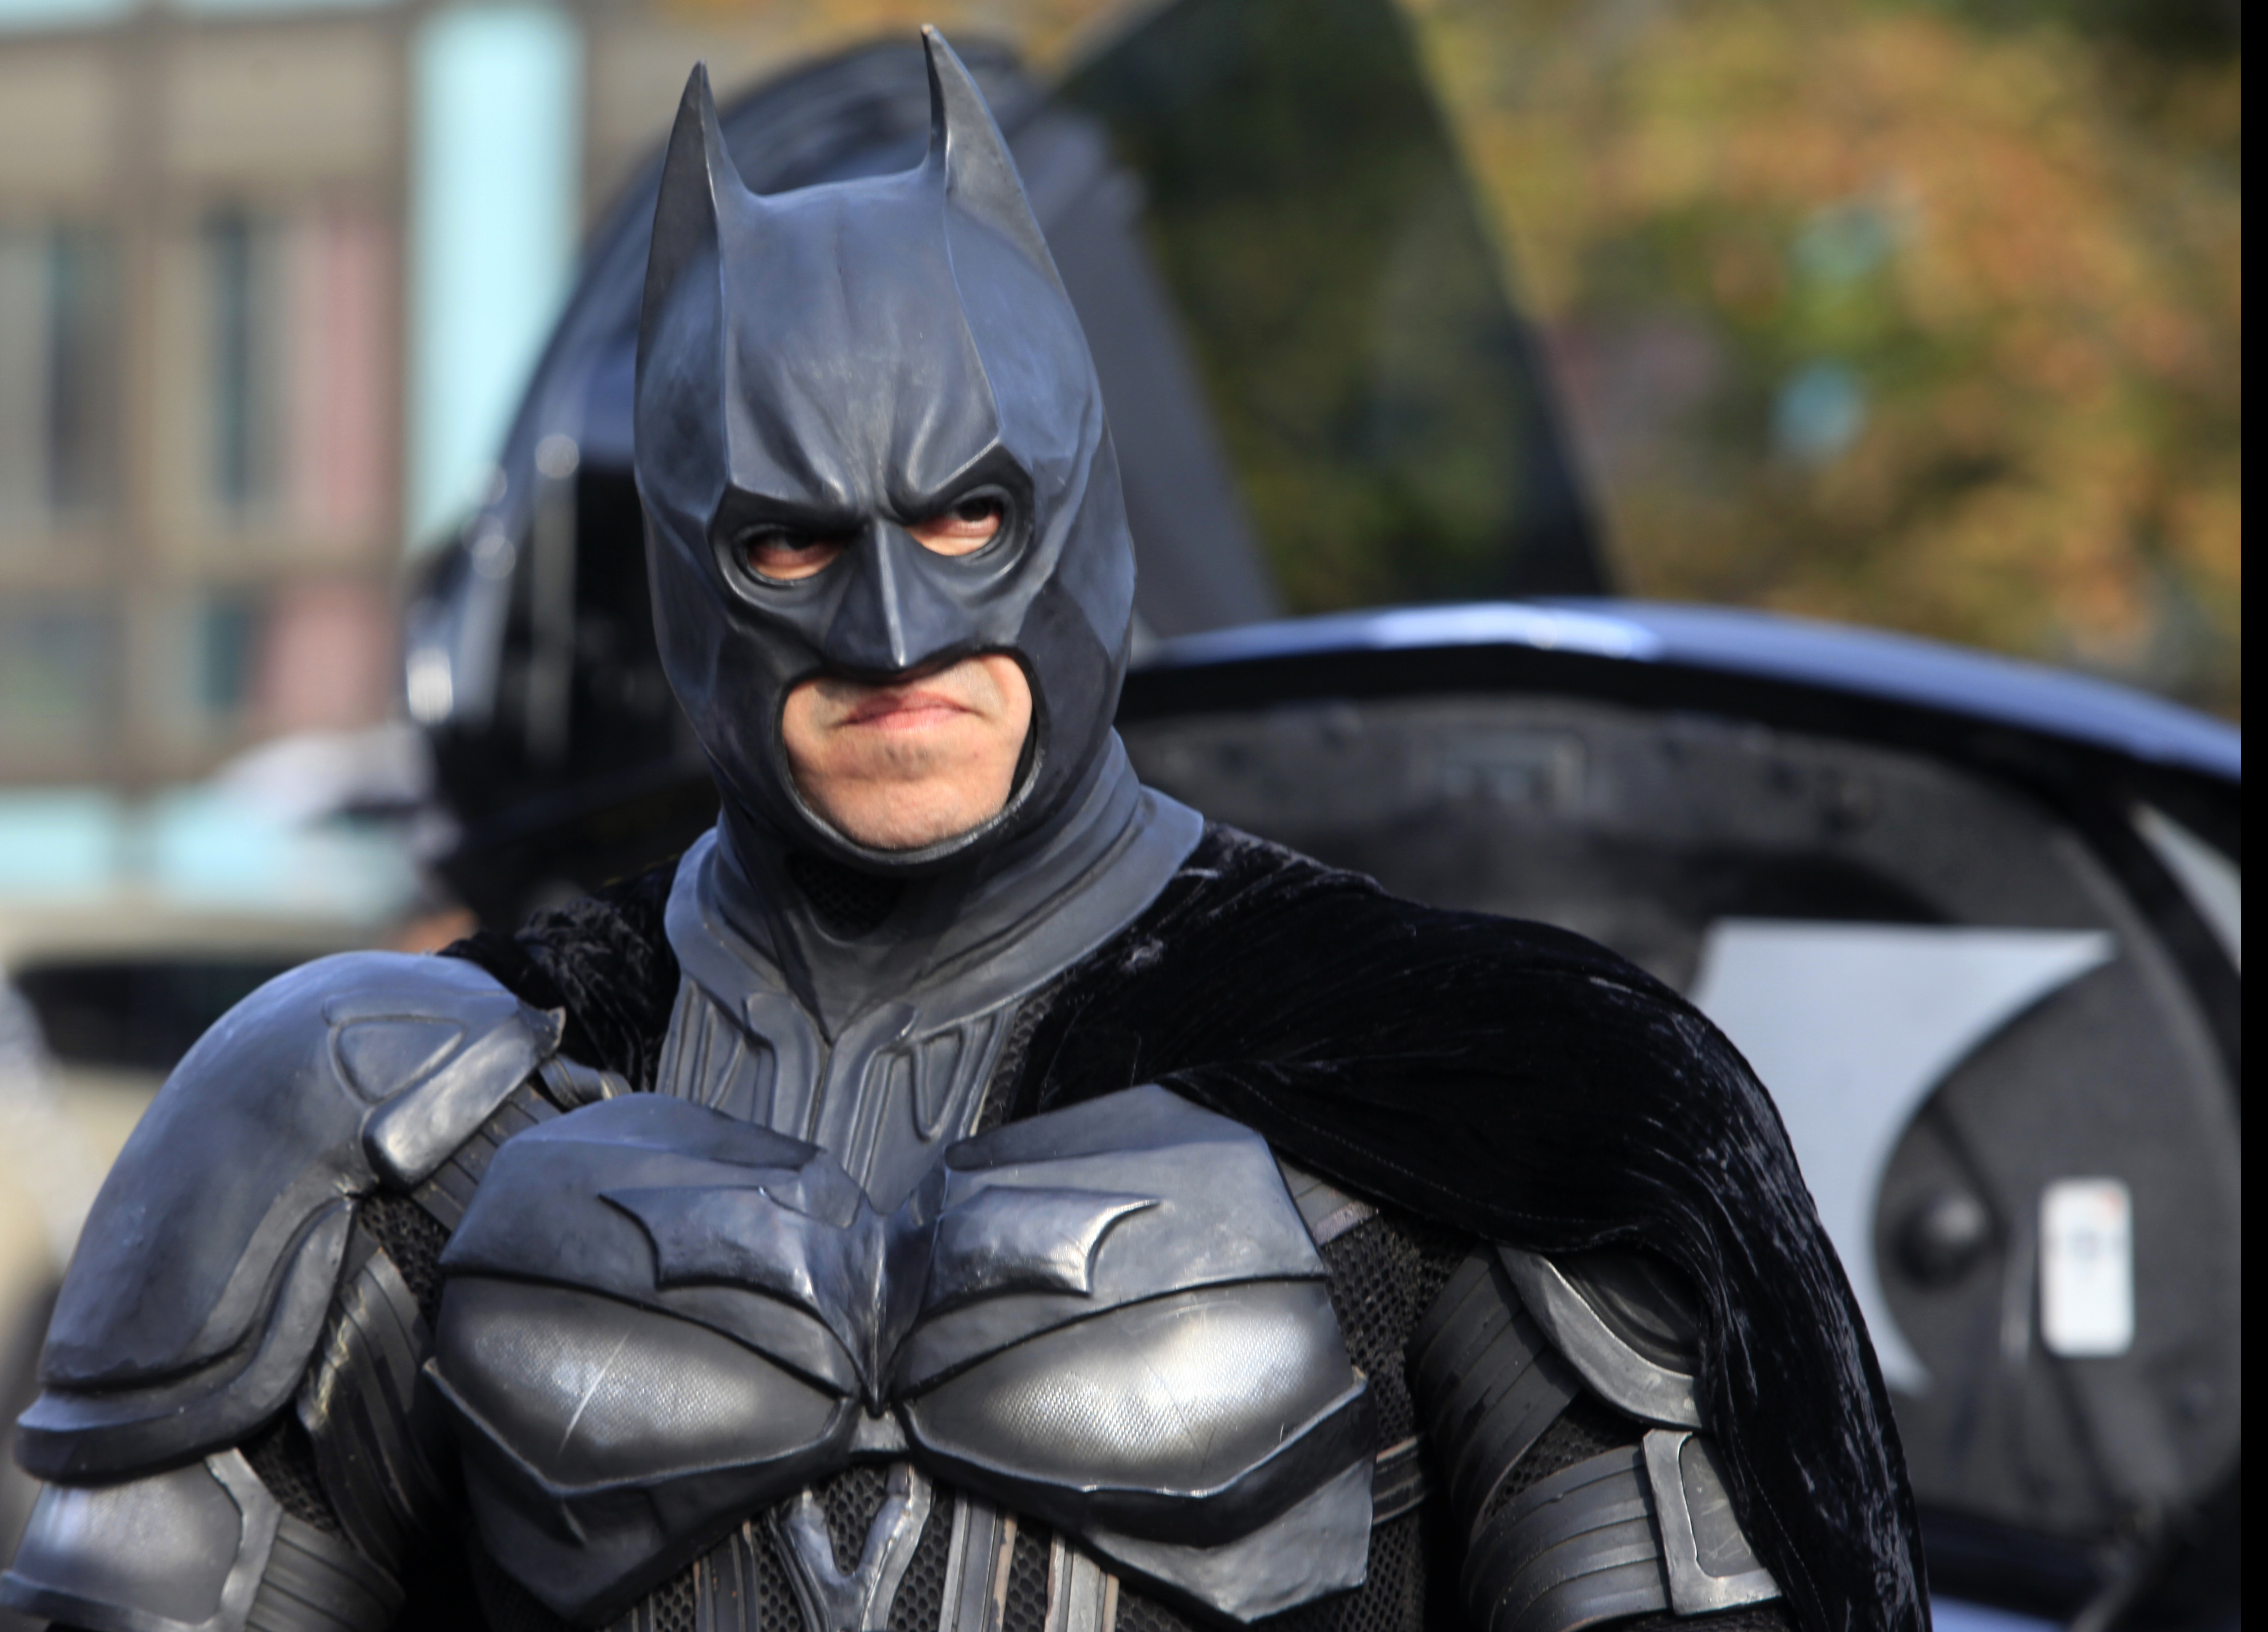 Gotham City is actually in South Jersey and this map proves it